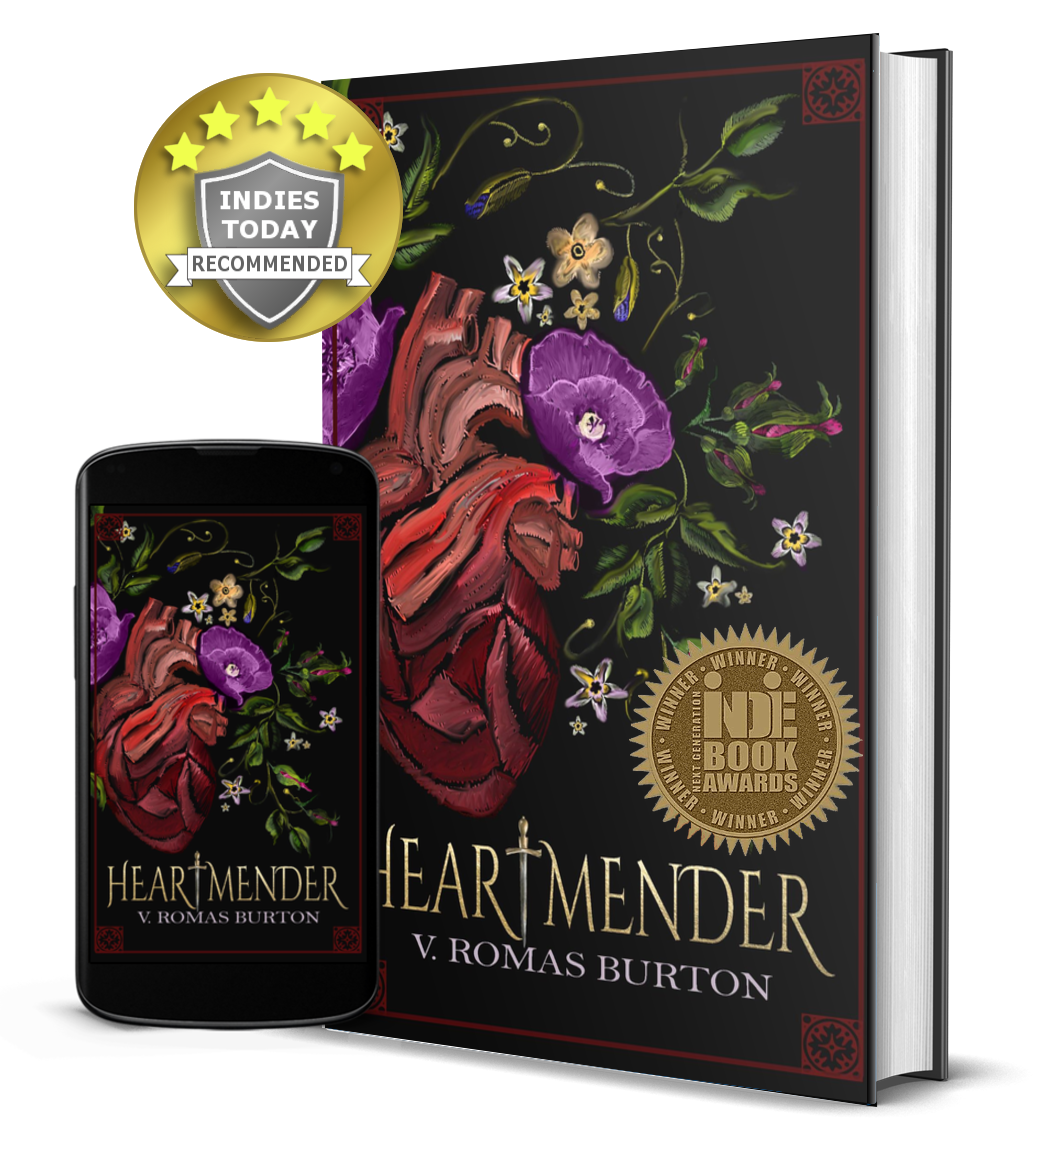 heartmender indie winner and recommends